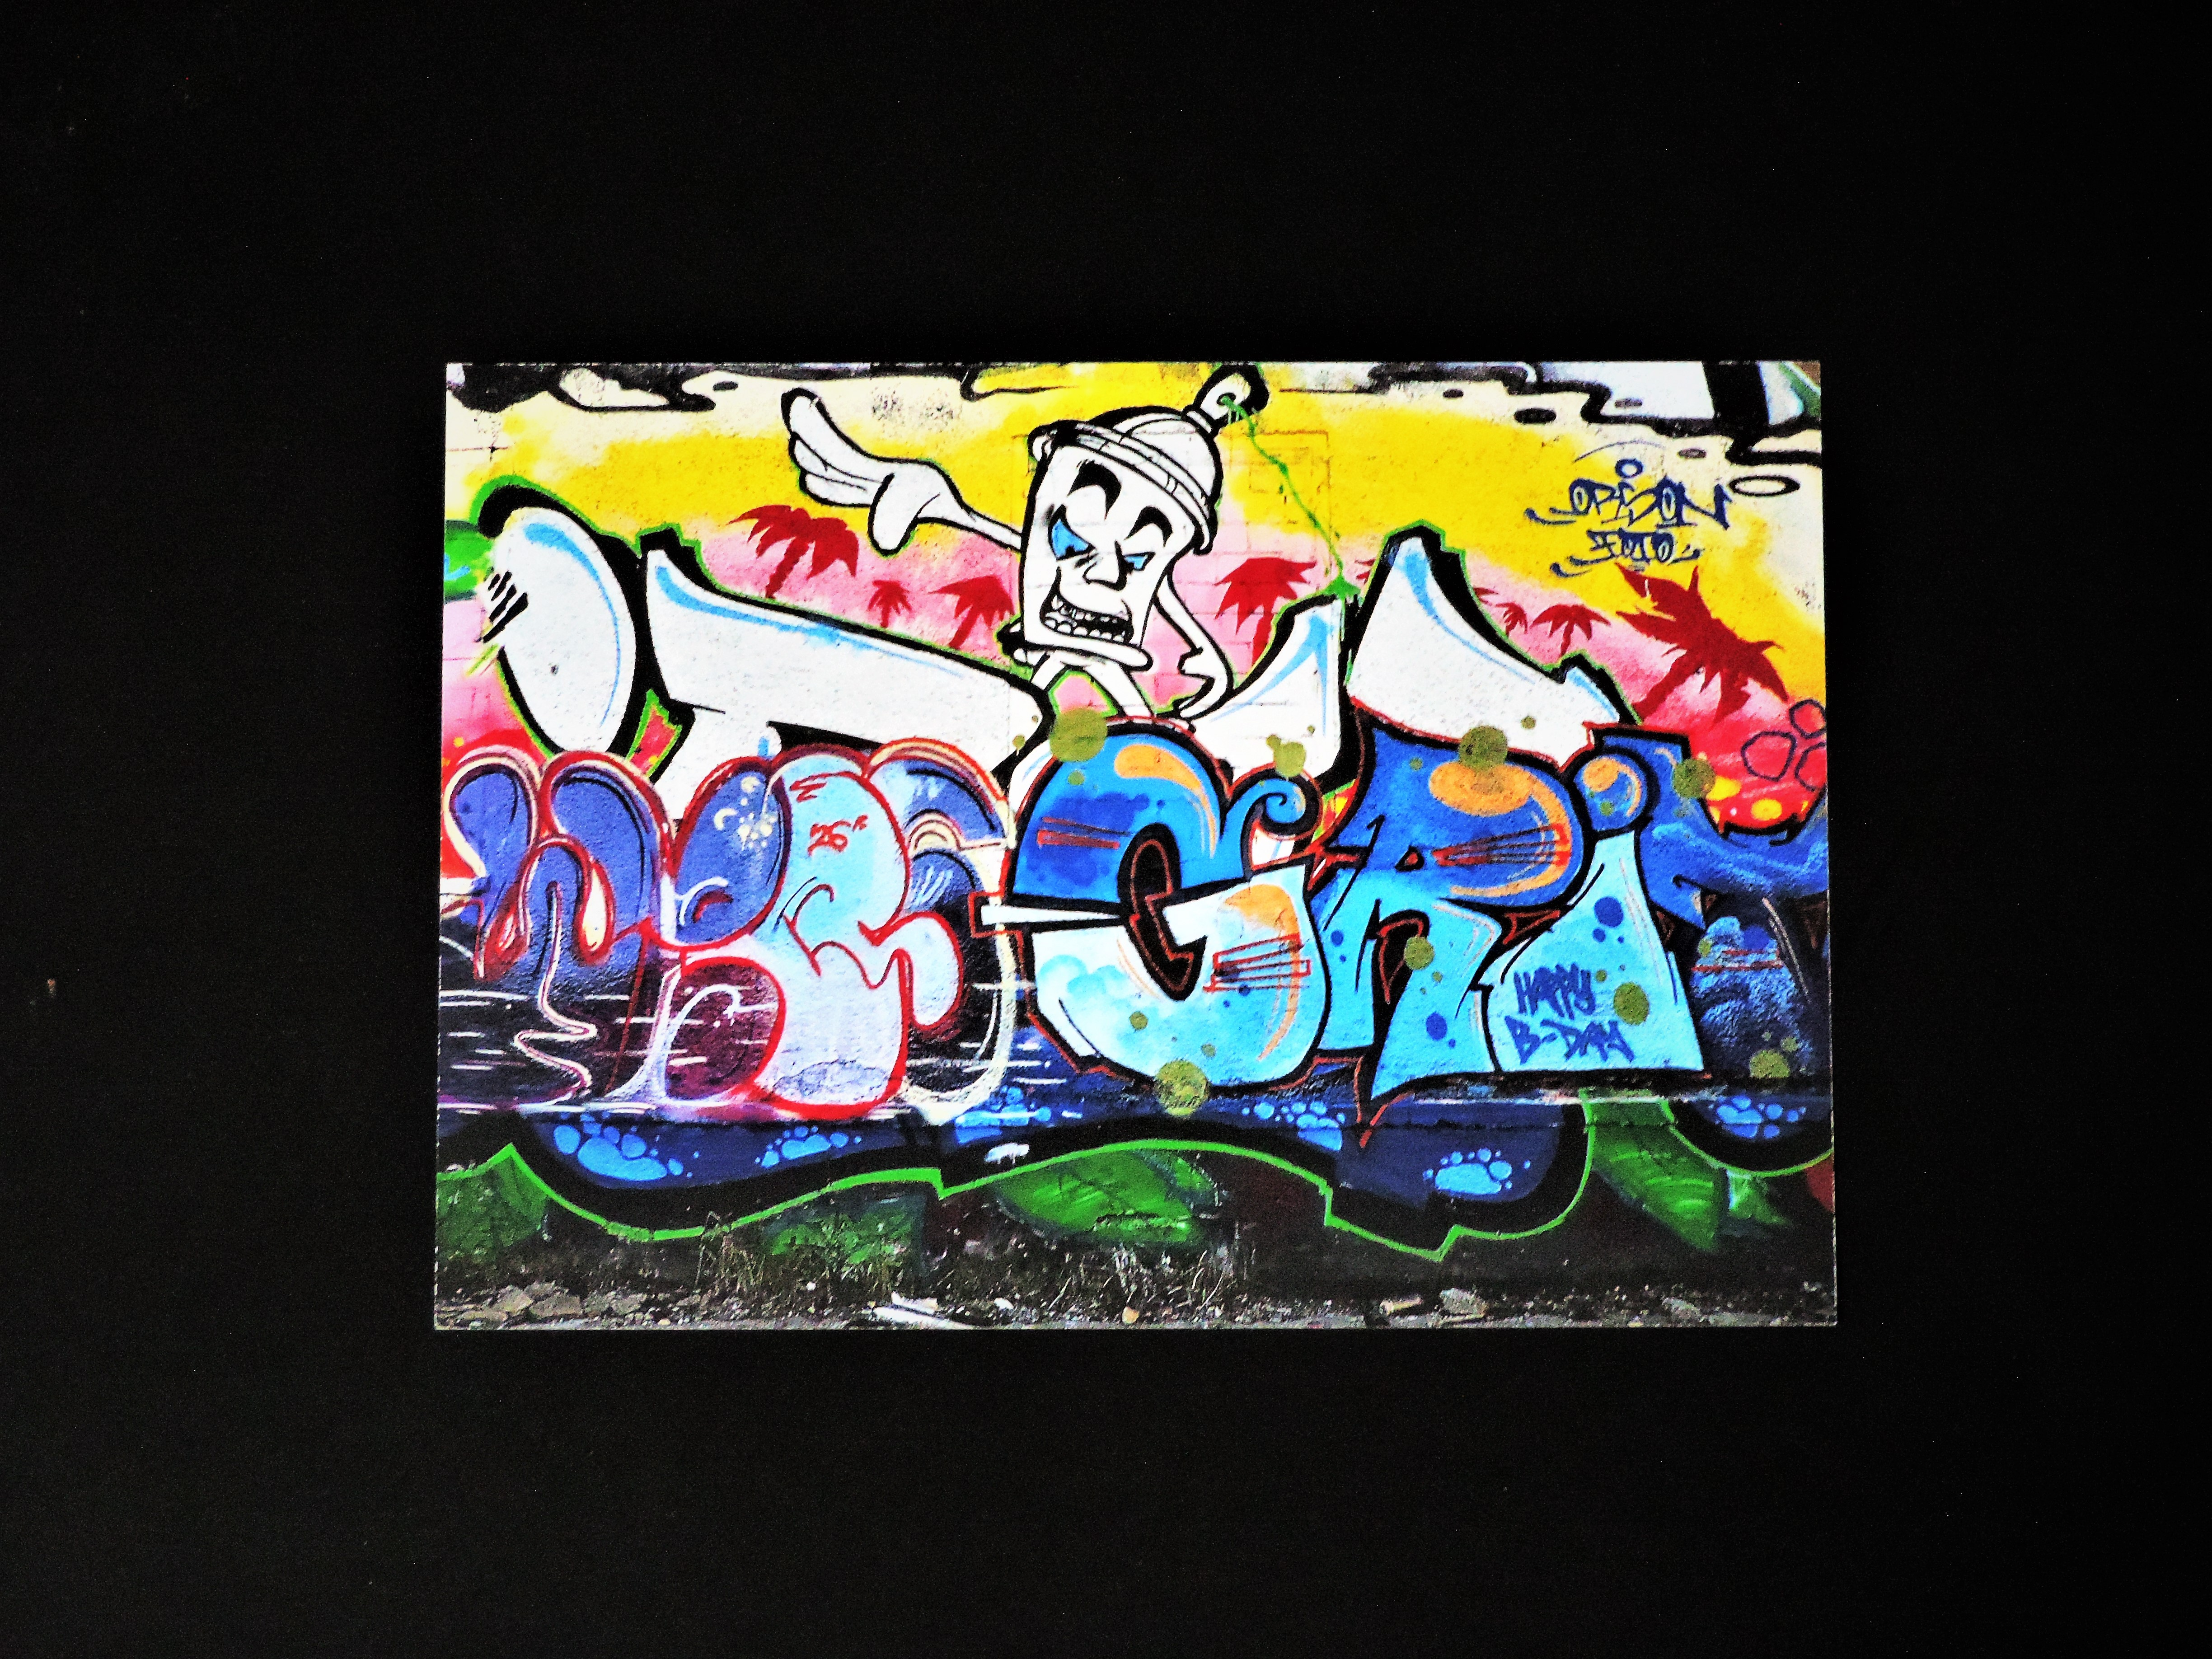 Berlin Graffiti Print